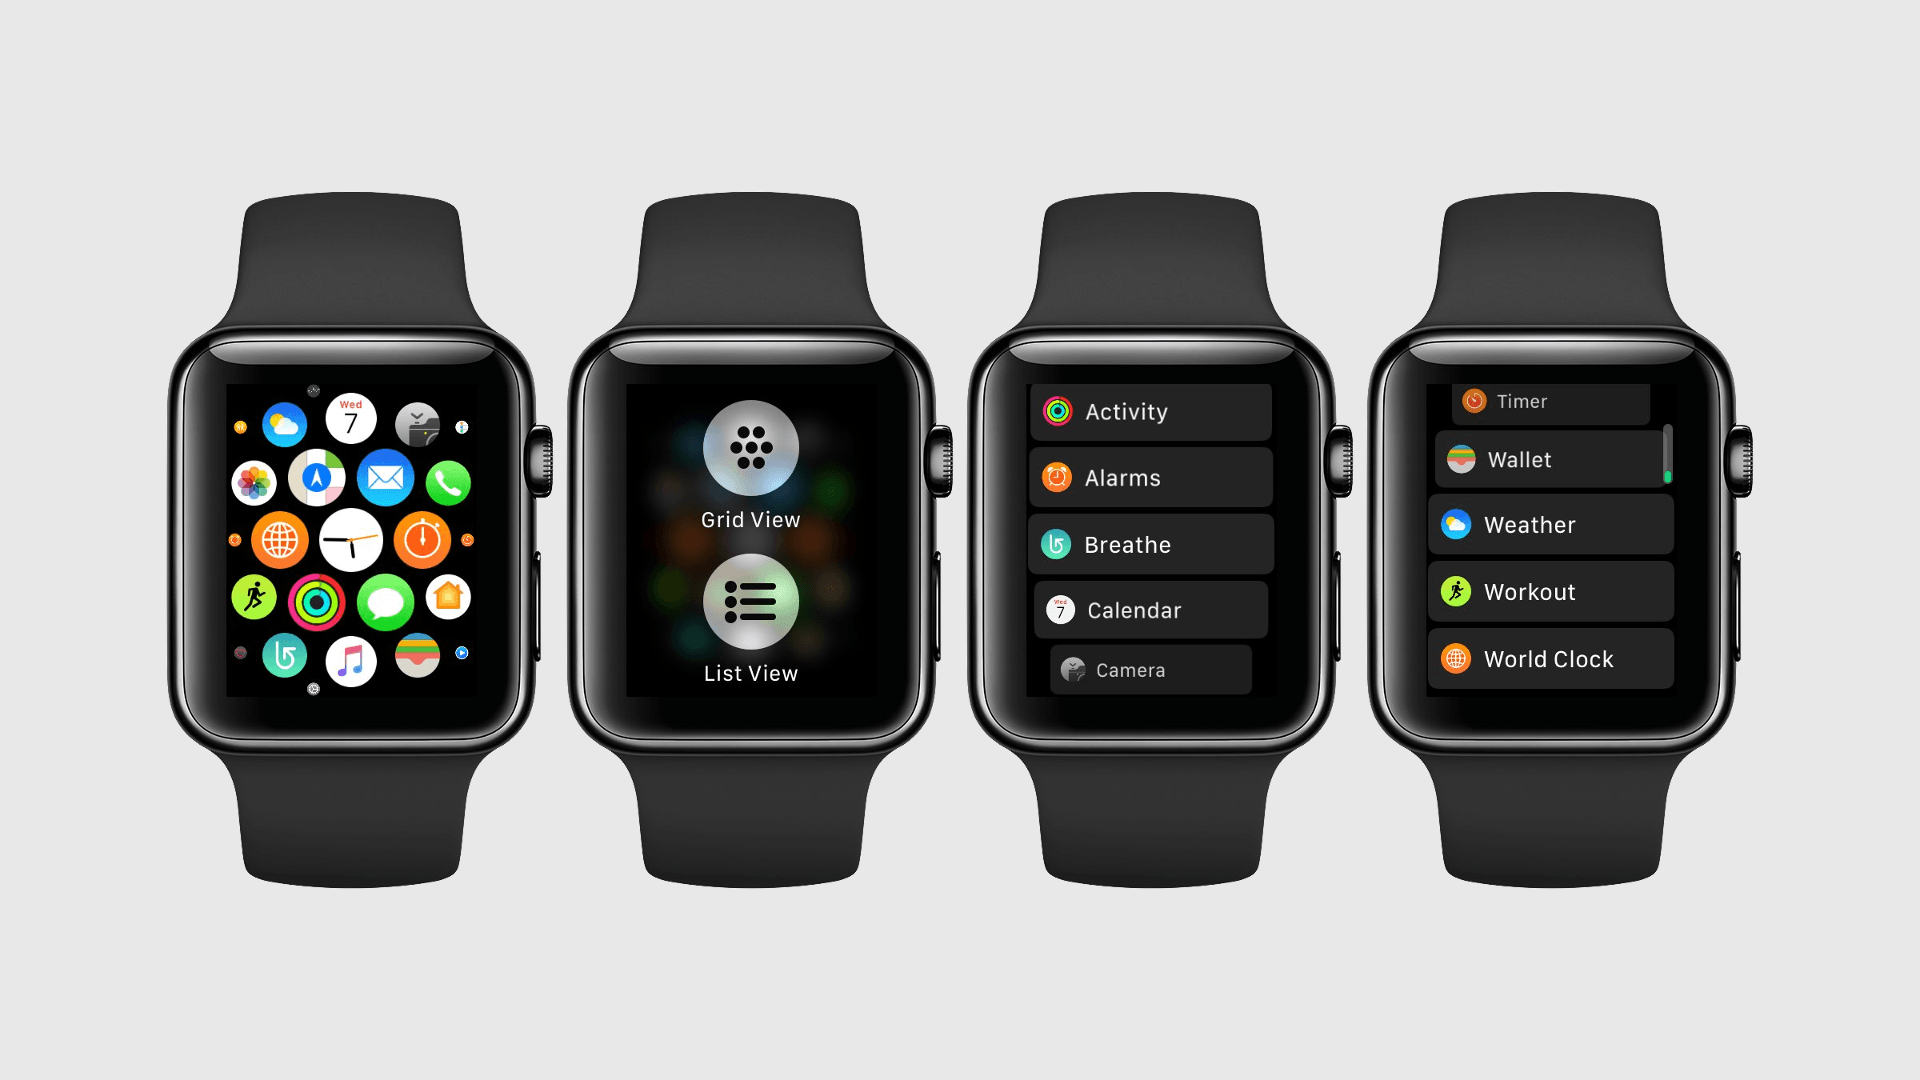 Apple Watch - watchOS 4